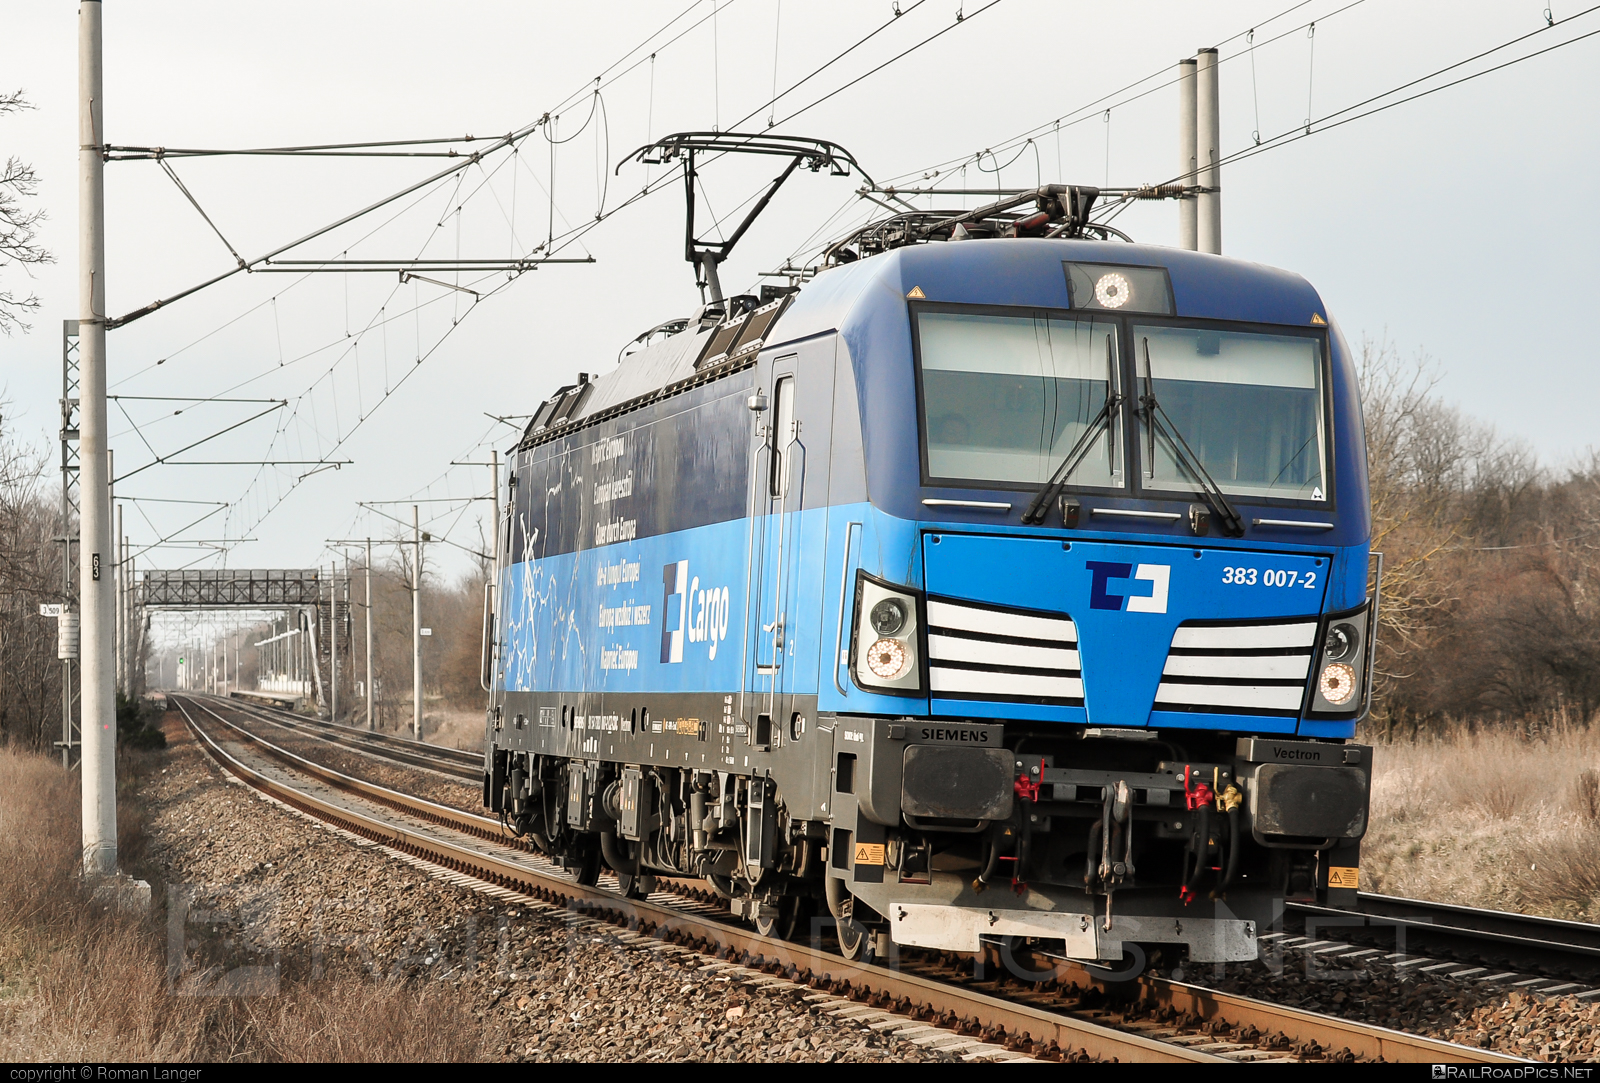 Siemens Vectron MS - 383 007-2 operated by ČD Cargo, a.s. #cdcargo #siemens #siemensvectron #siemensvectronms #vectron #vectronms